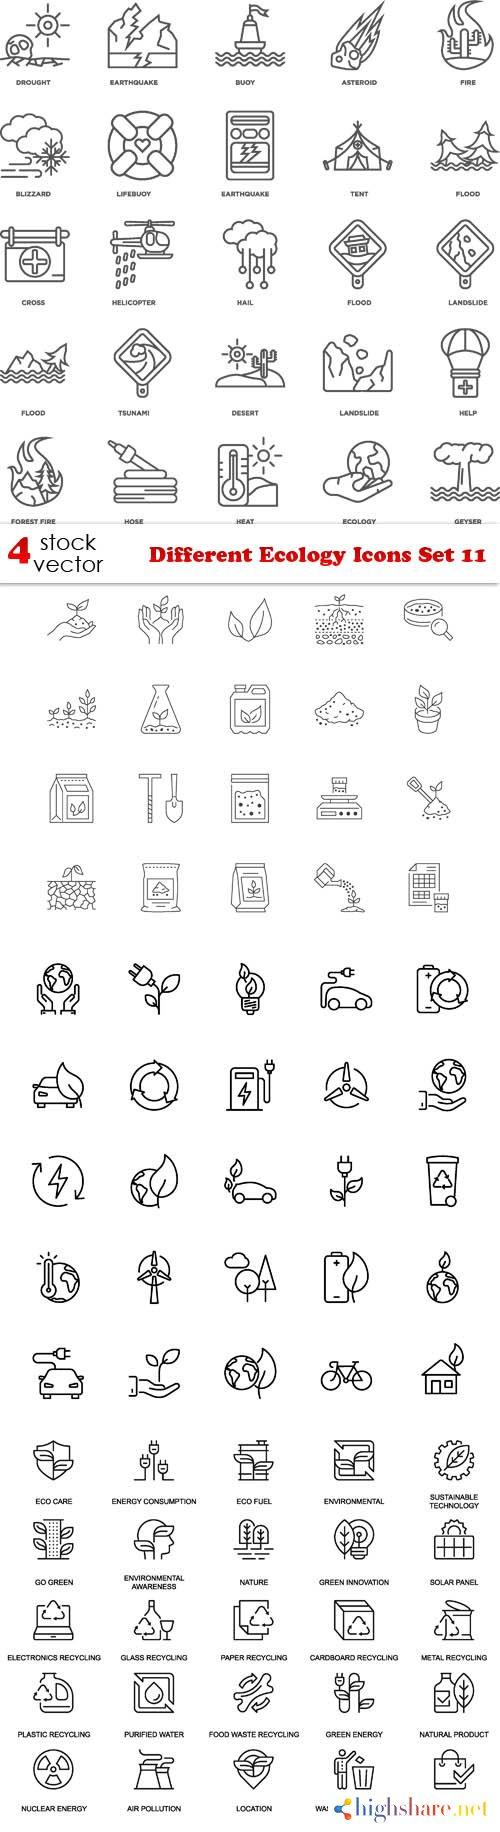 vectors different ecology icons set 11 5f3fc887bf2a6 - Vectors - Different Ecology Icons Set 11